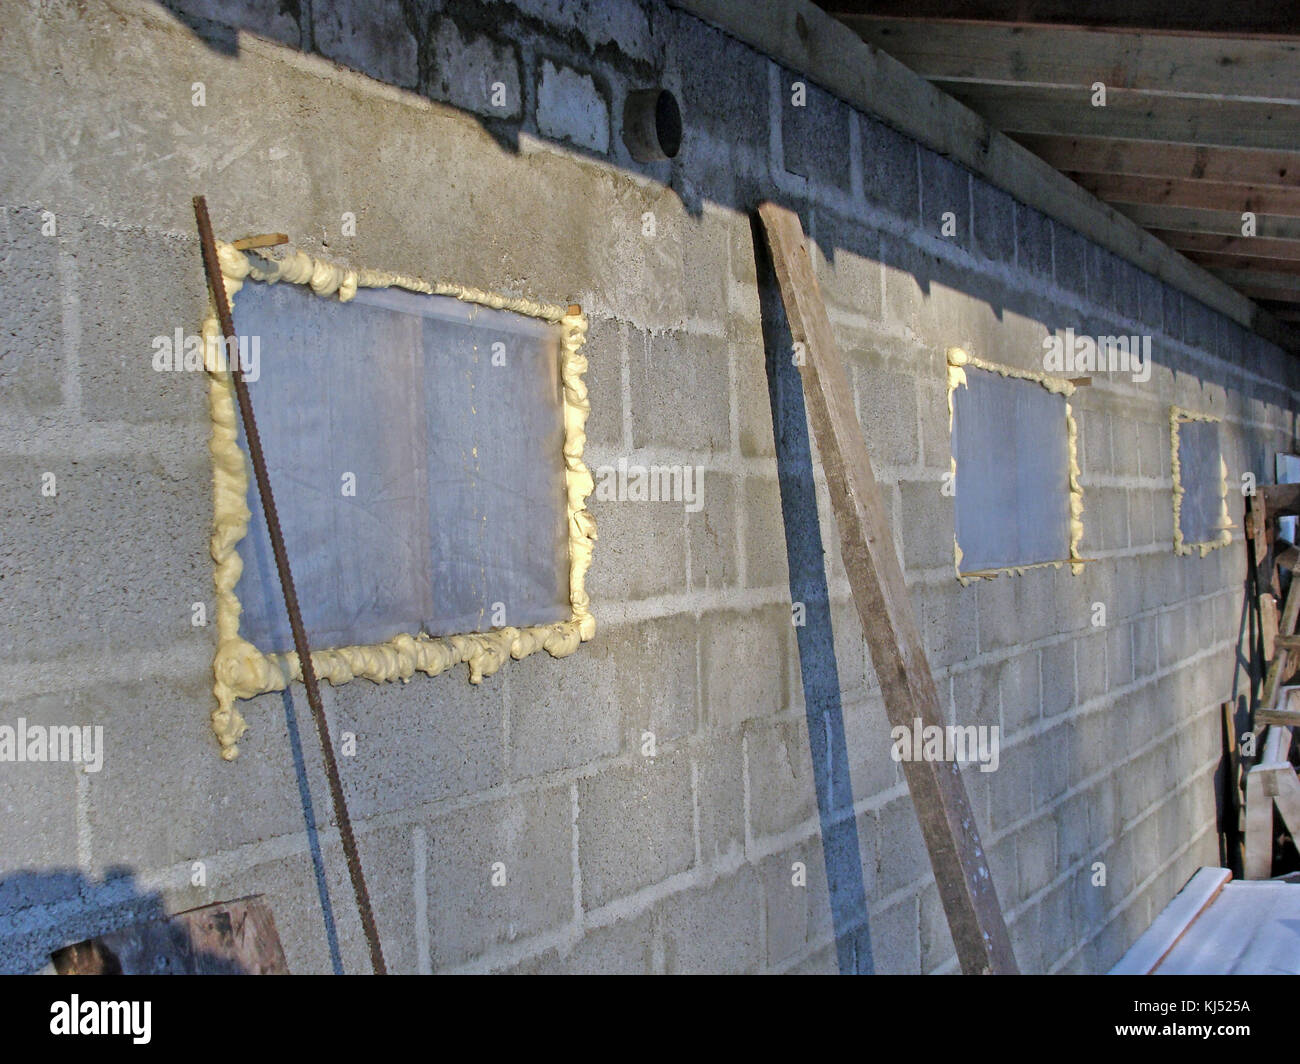 On barn under construction window glass is replaced with plastic film and montage foam. - Stock Image